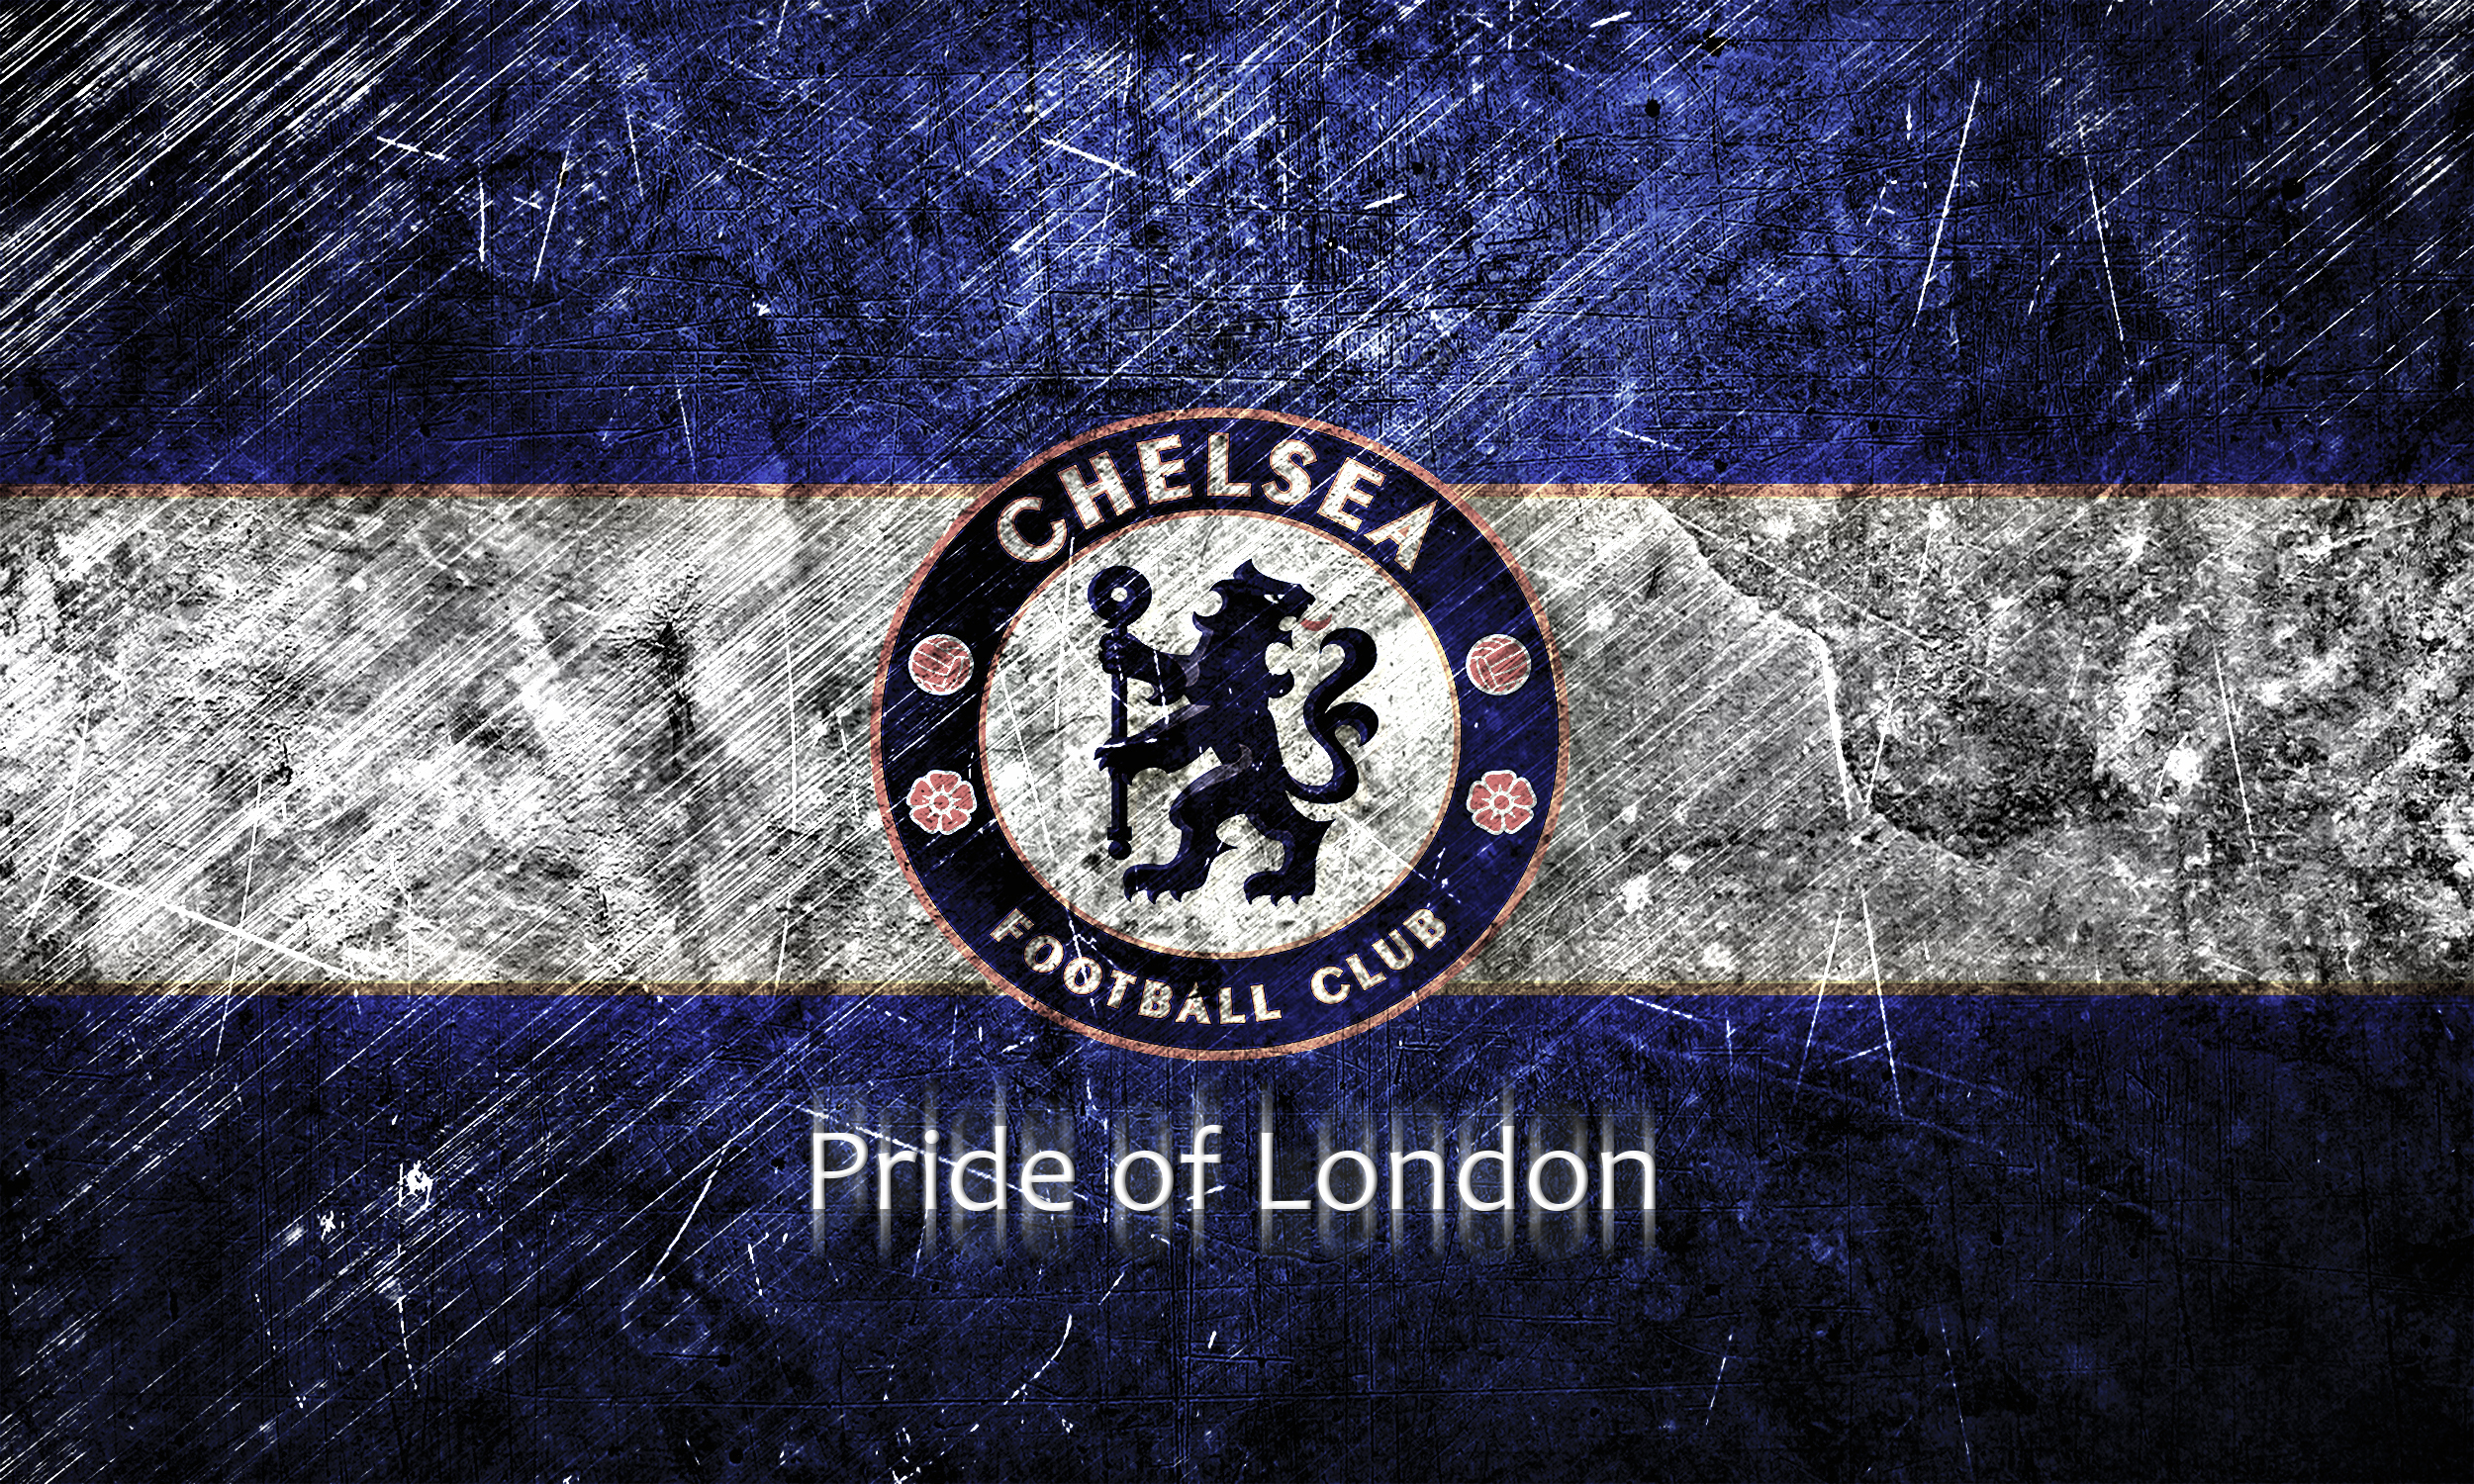 Chelsea Wallpaper hd wallpapers Page 0 High Resolution 2500x1500